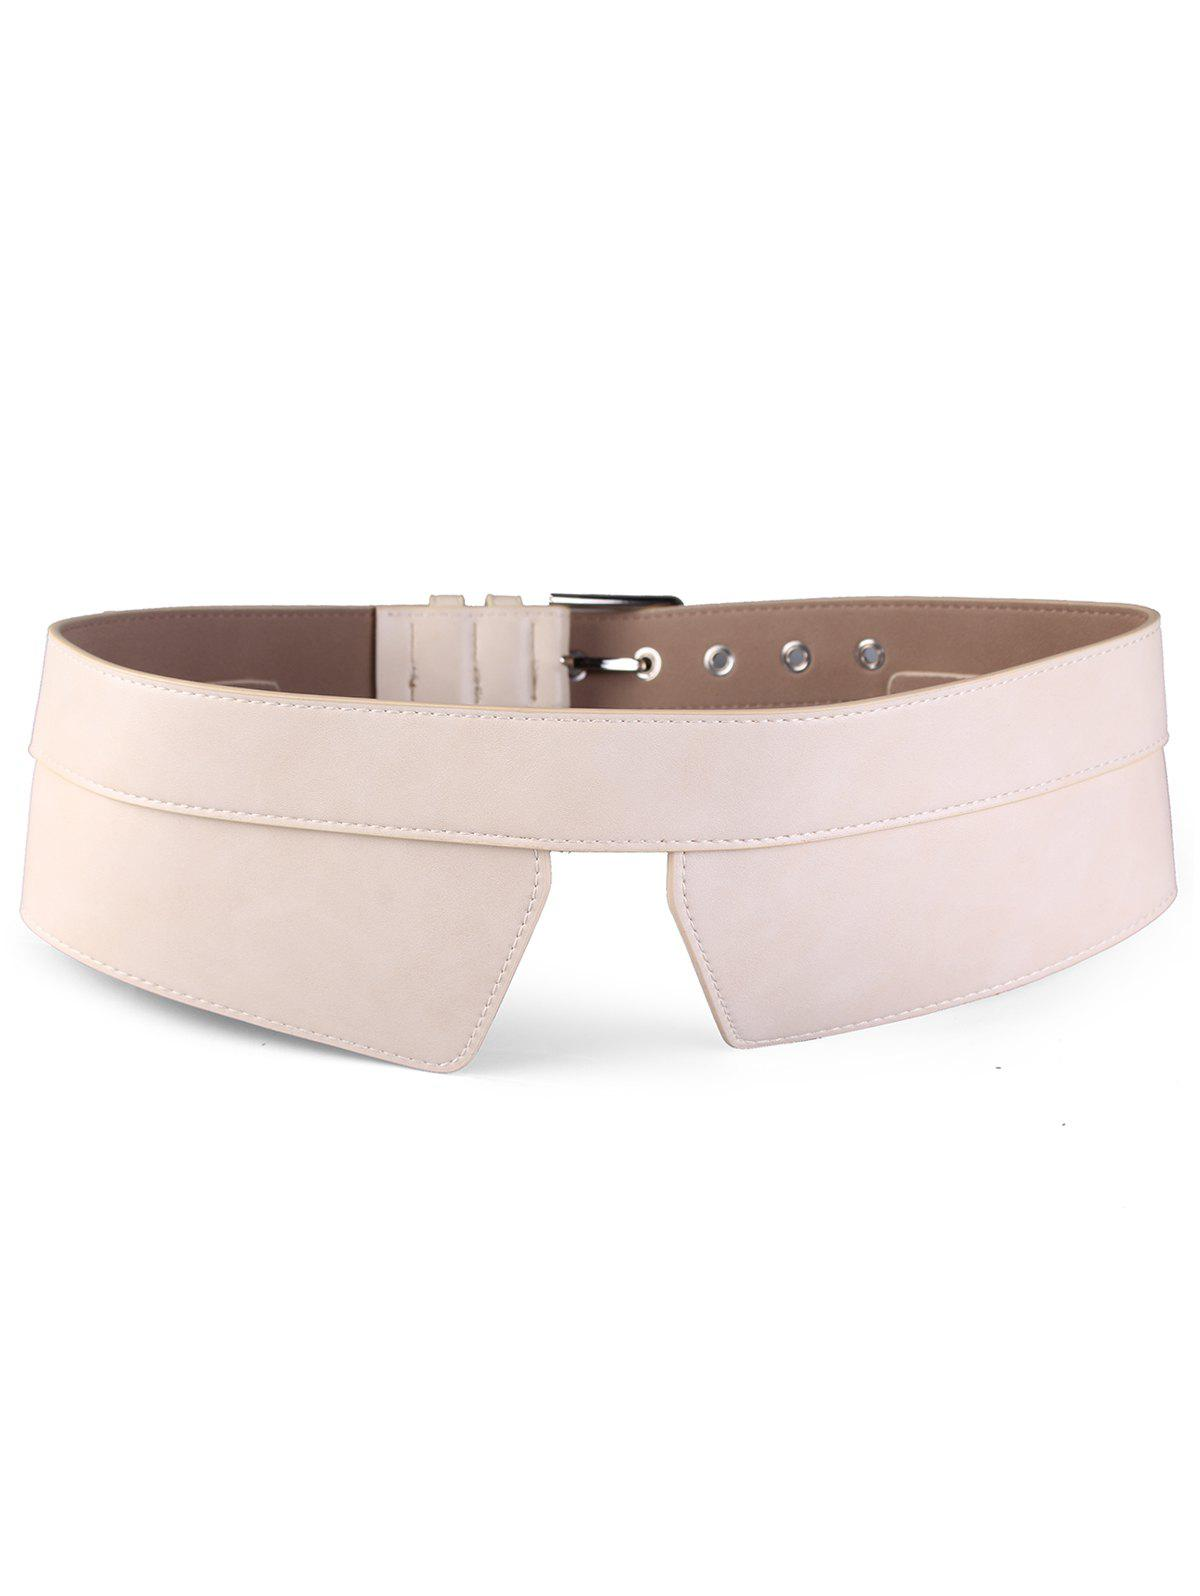 Metal Buckle Faux Leather High Waist Belt - APRICOT